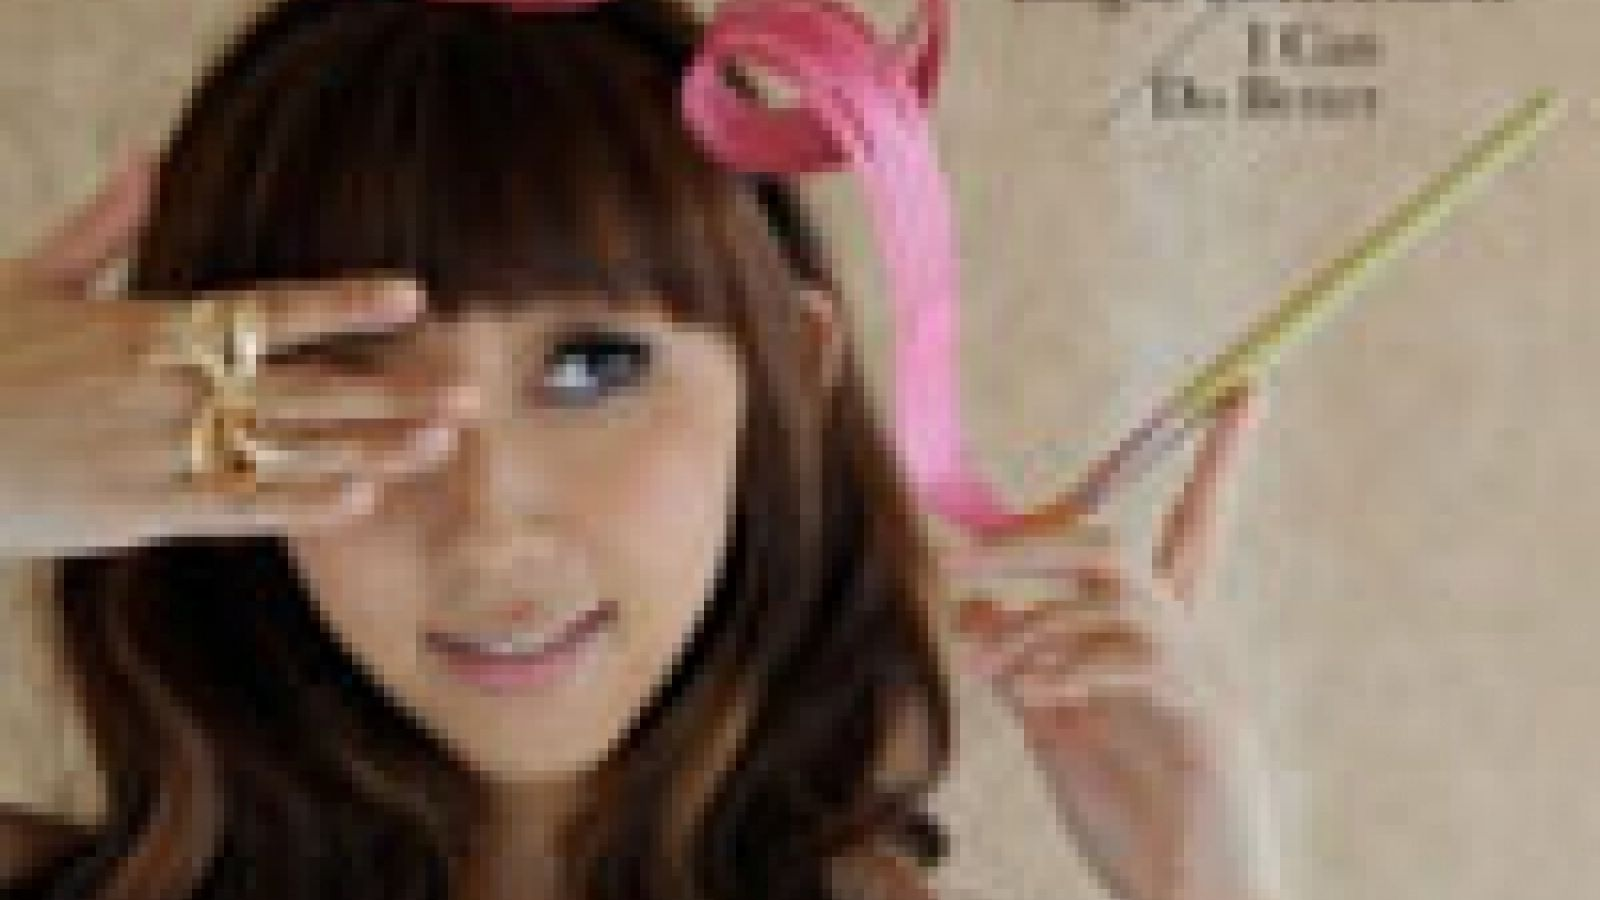 Rie fus Greatest Hits © Sony Music Entertainment (Japan) Inc.